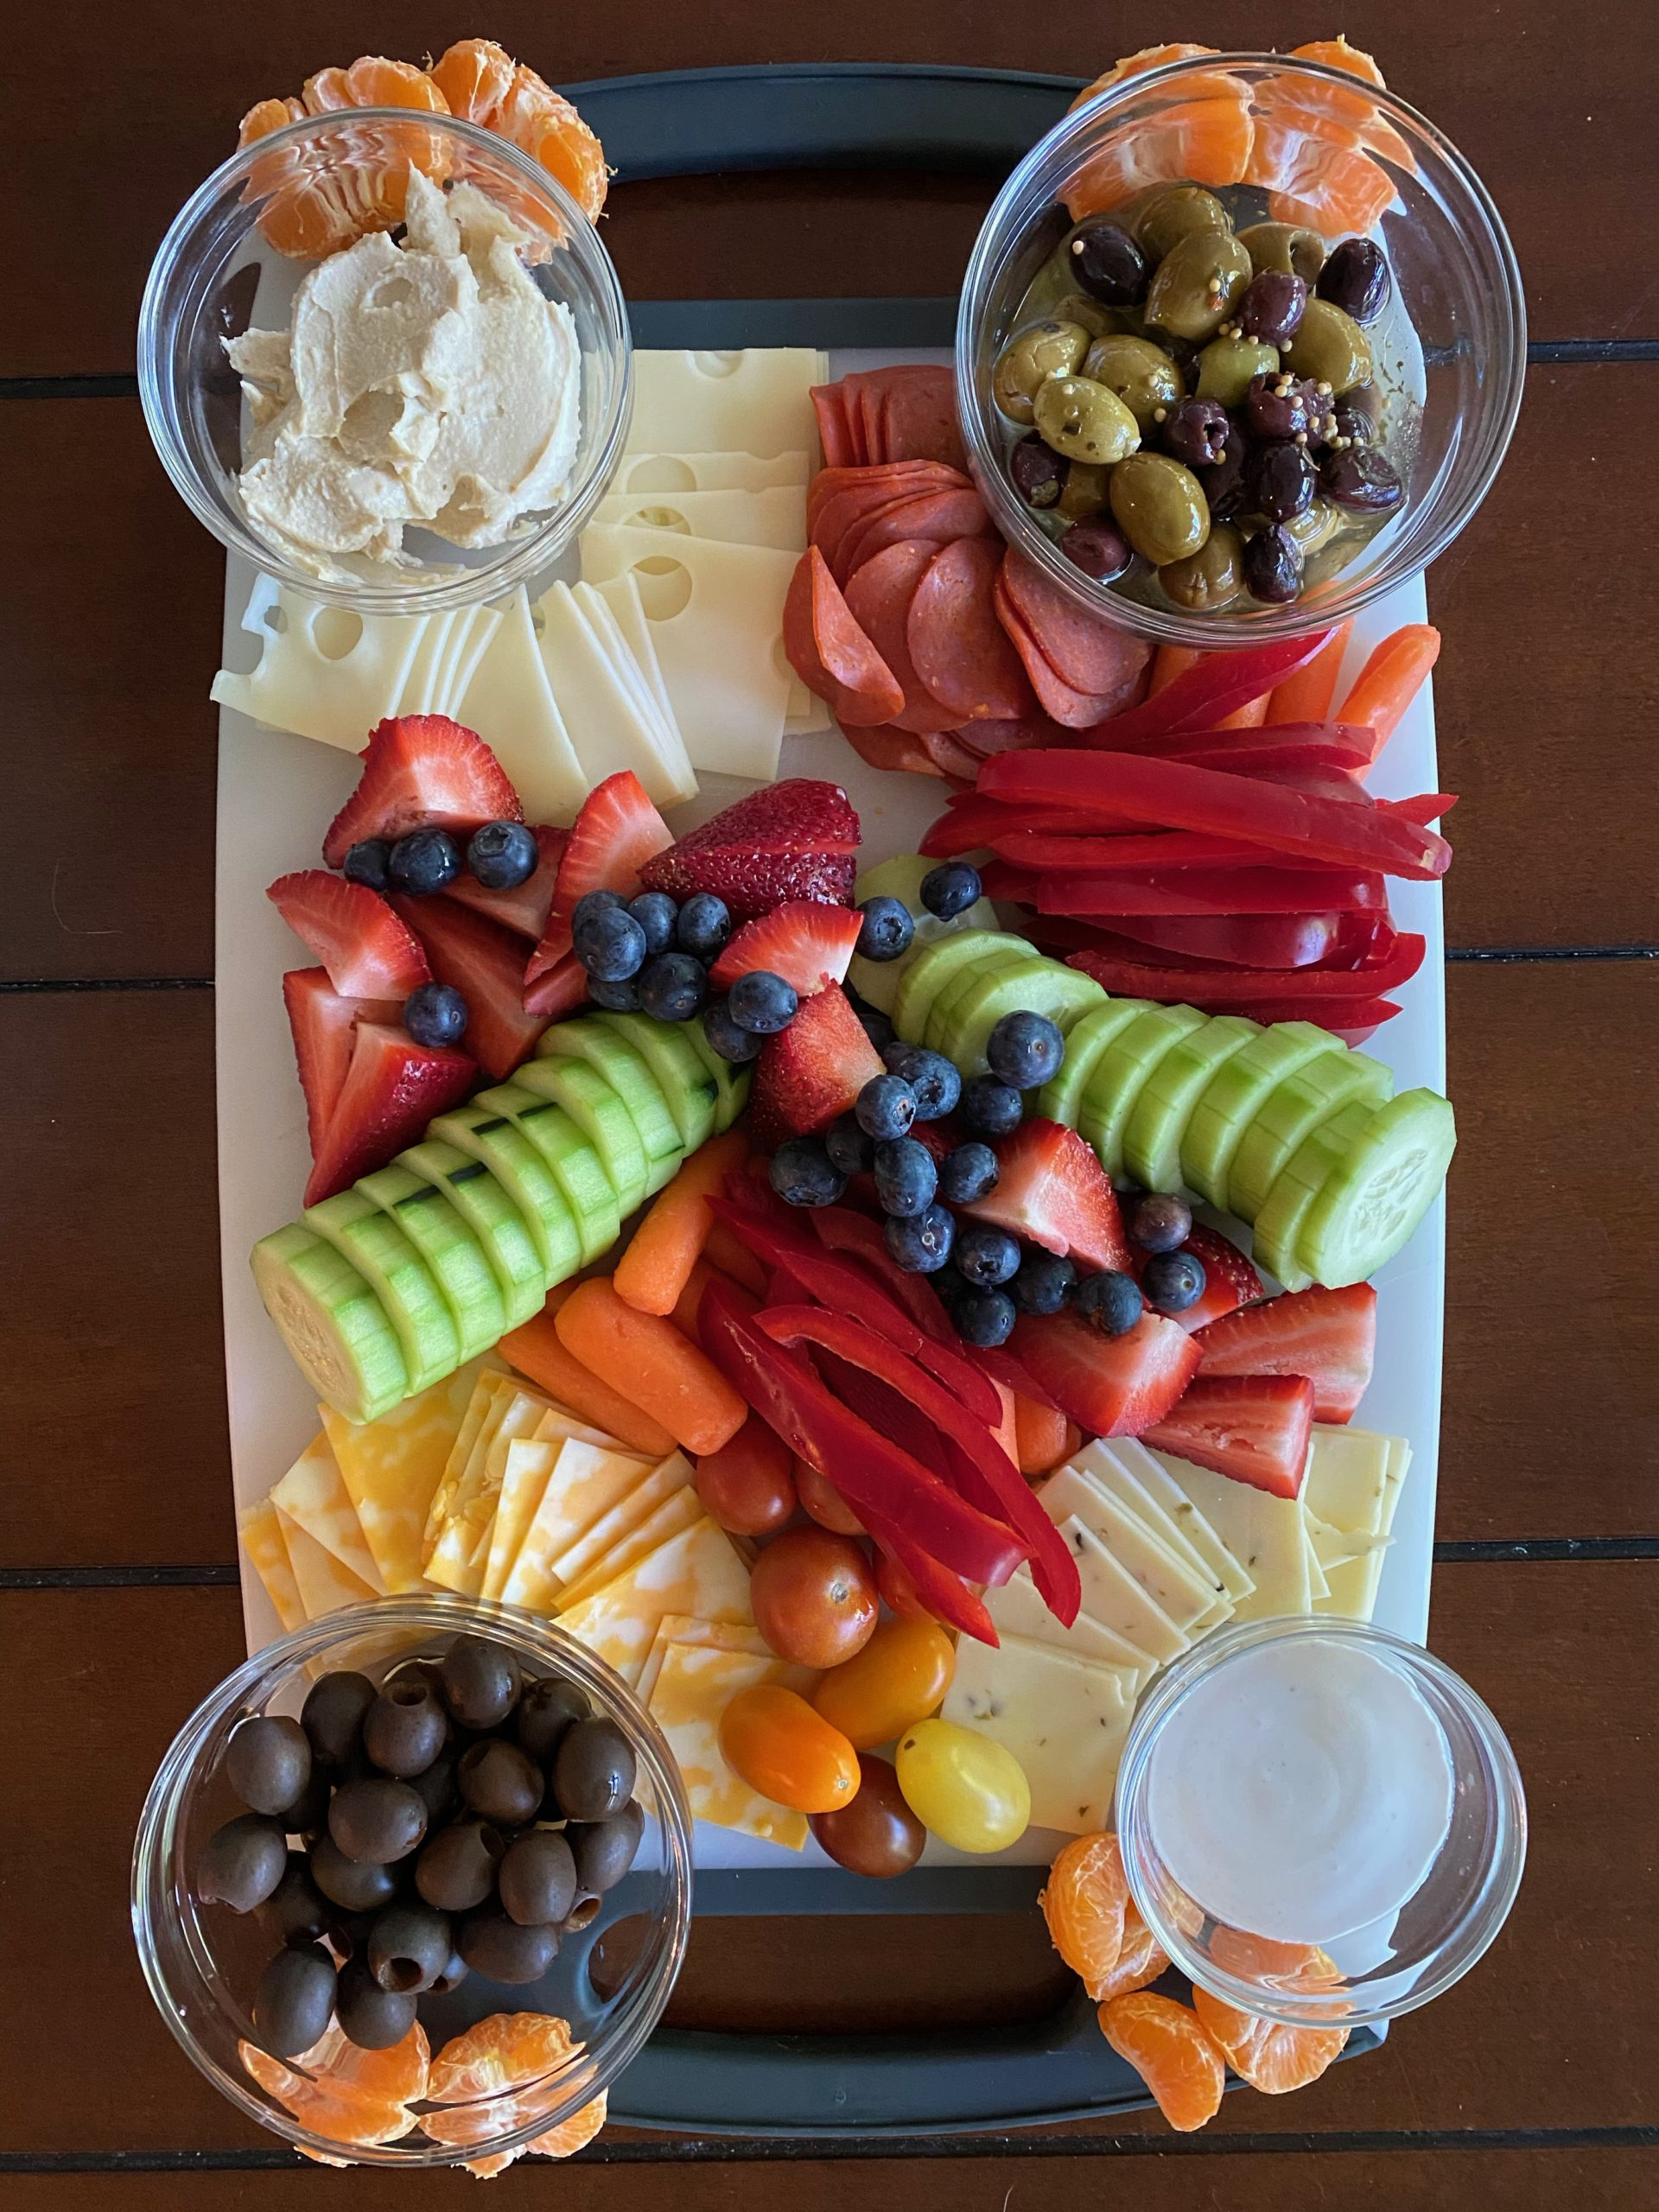 cutting board with various foods